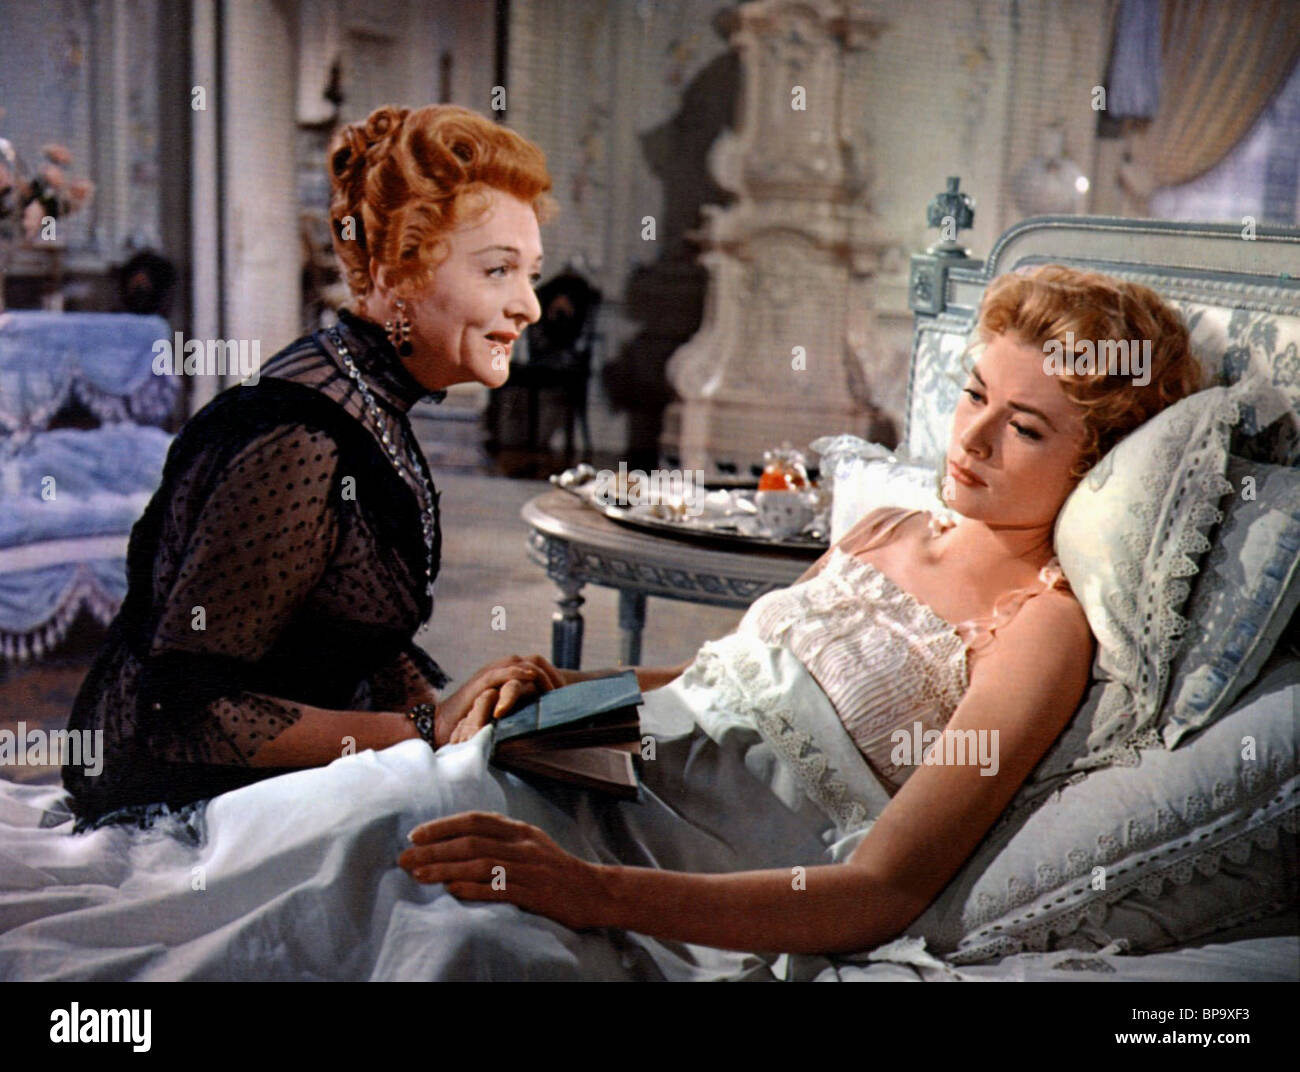 ESTELLE WINWOOD & GRACE KELLY THE SWAN (1956) - Stock Image